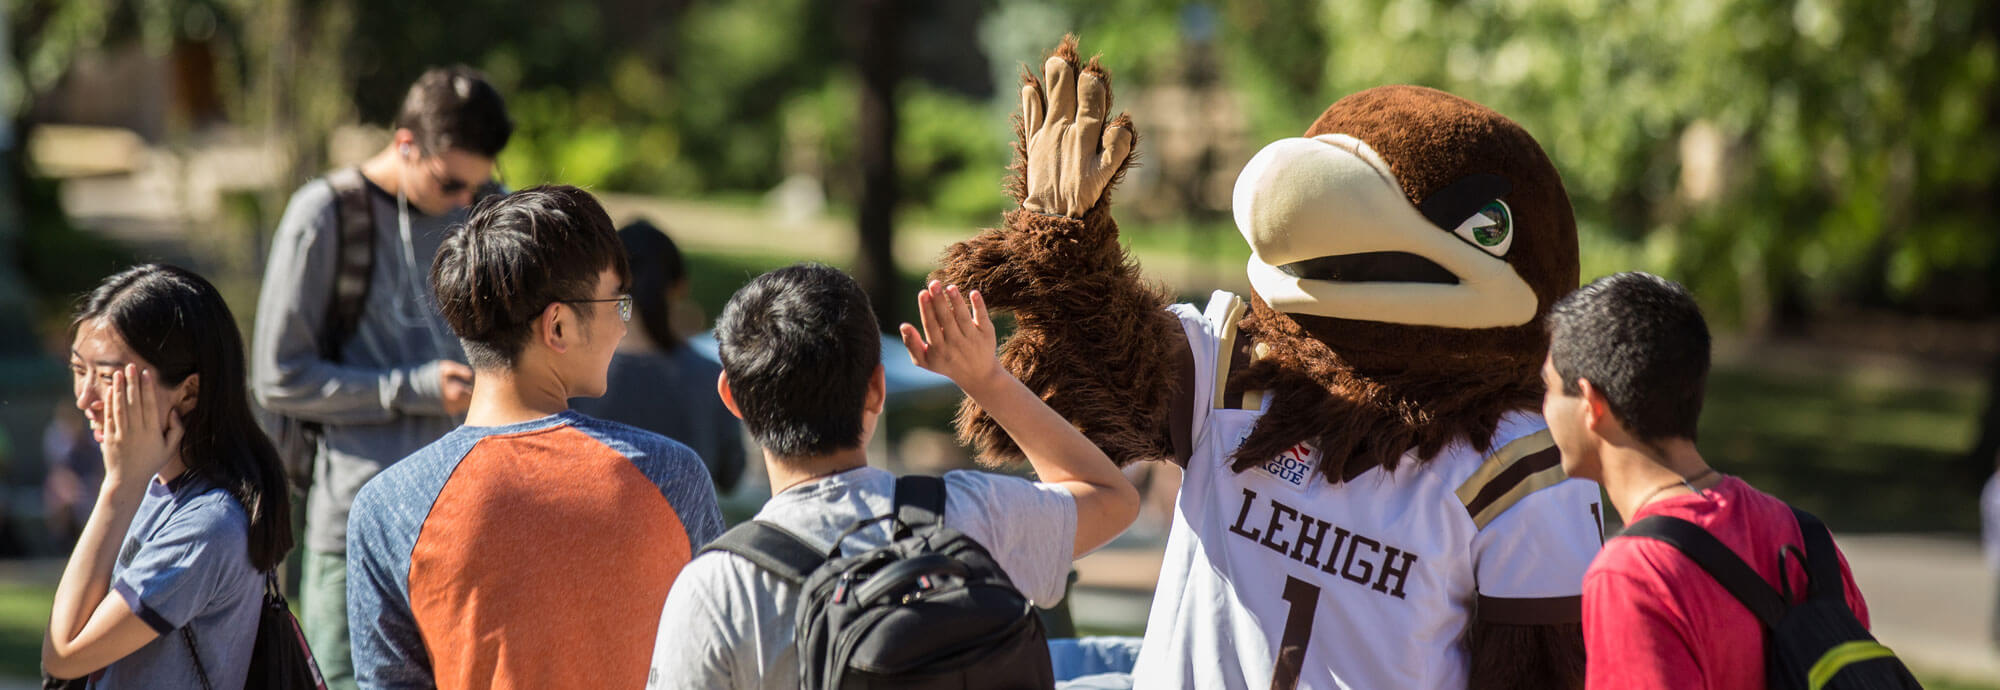 Lehigh mountainhawk mascot, Clutch, high-fives student